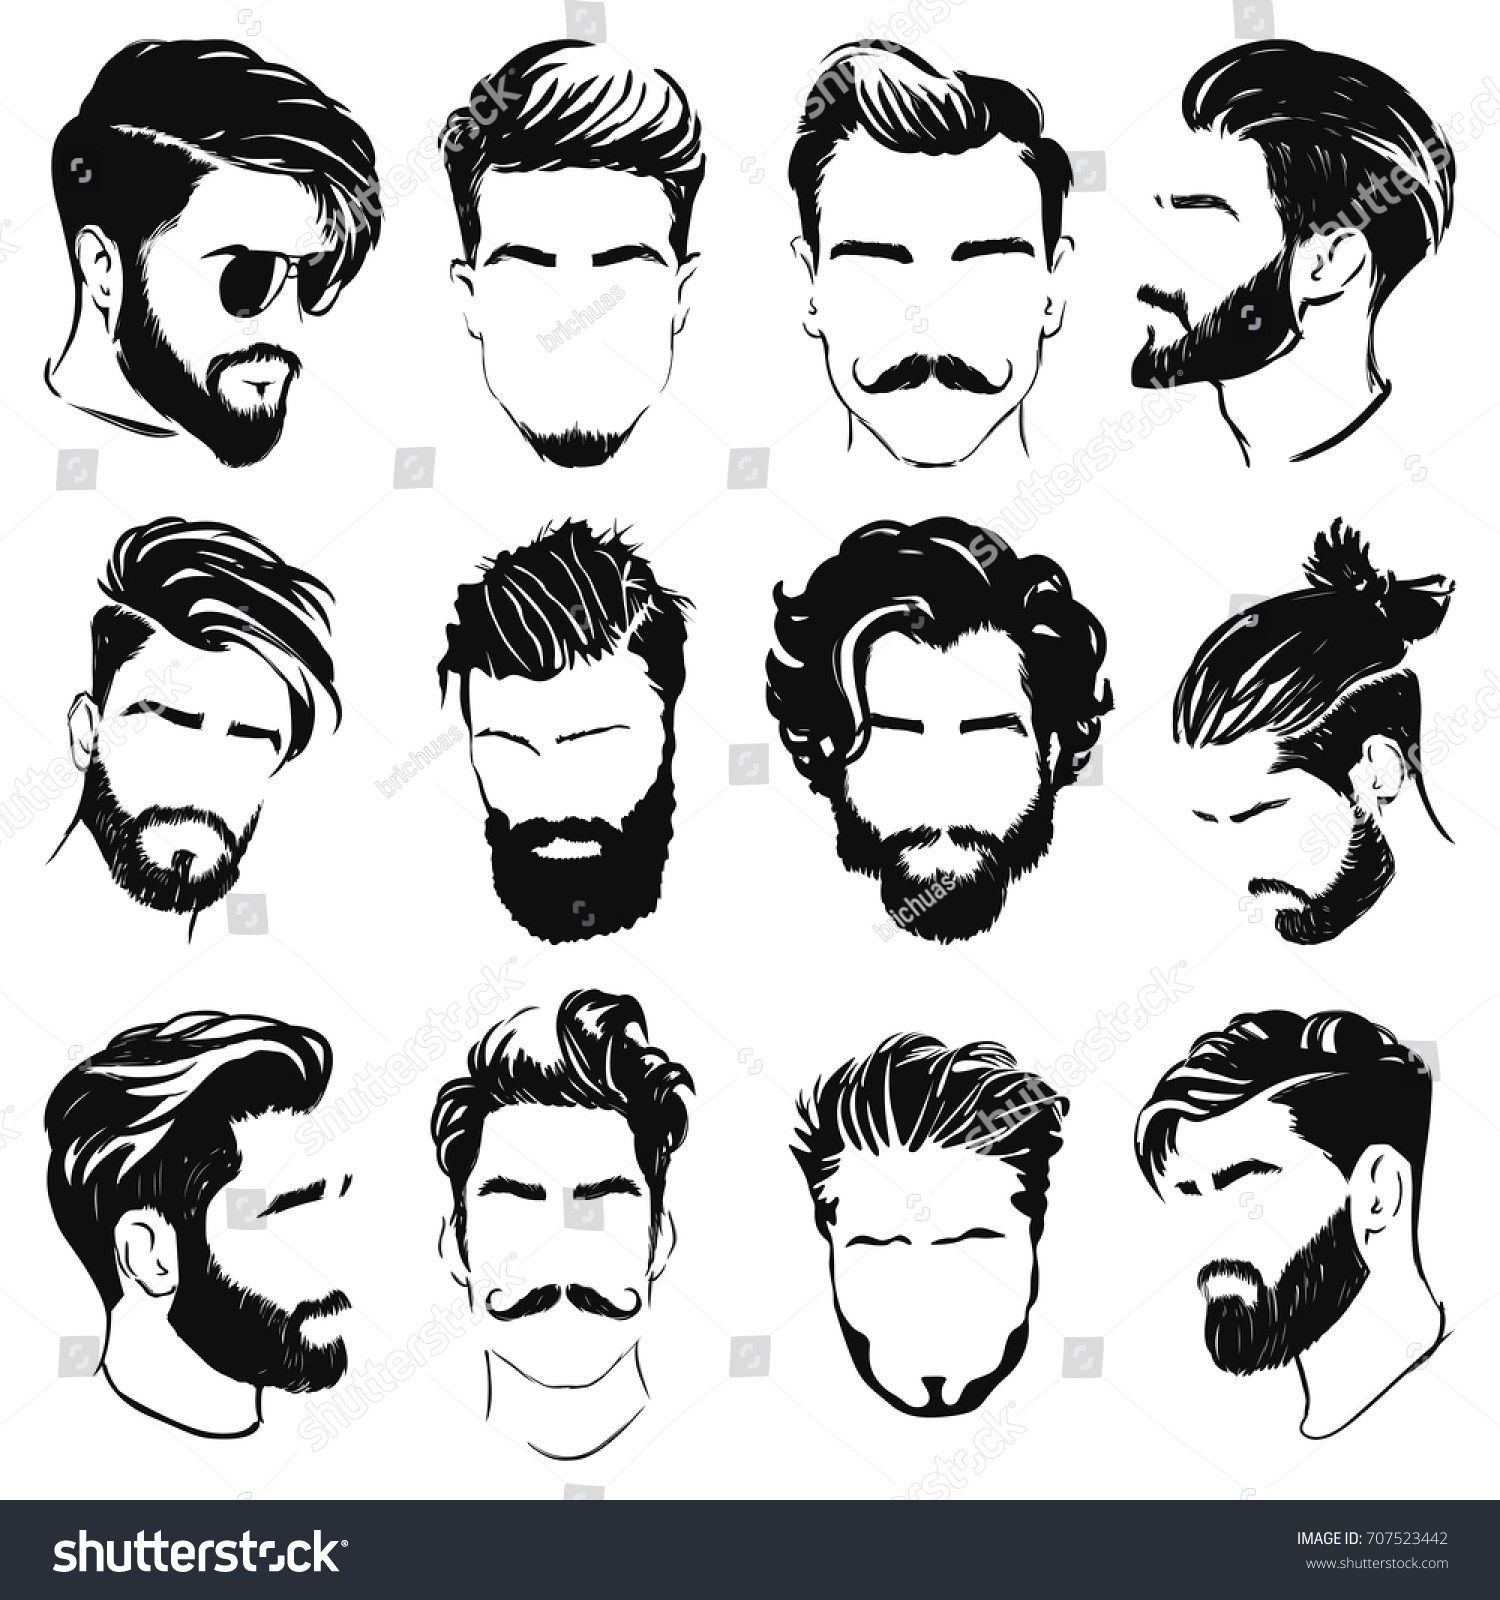 10 Amazing Drawing Hairstyles For Characters Ideas Drawing Male Hair Hair Illustration How To Draw Hair